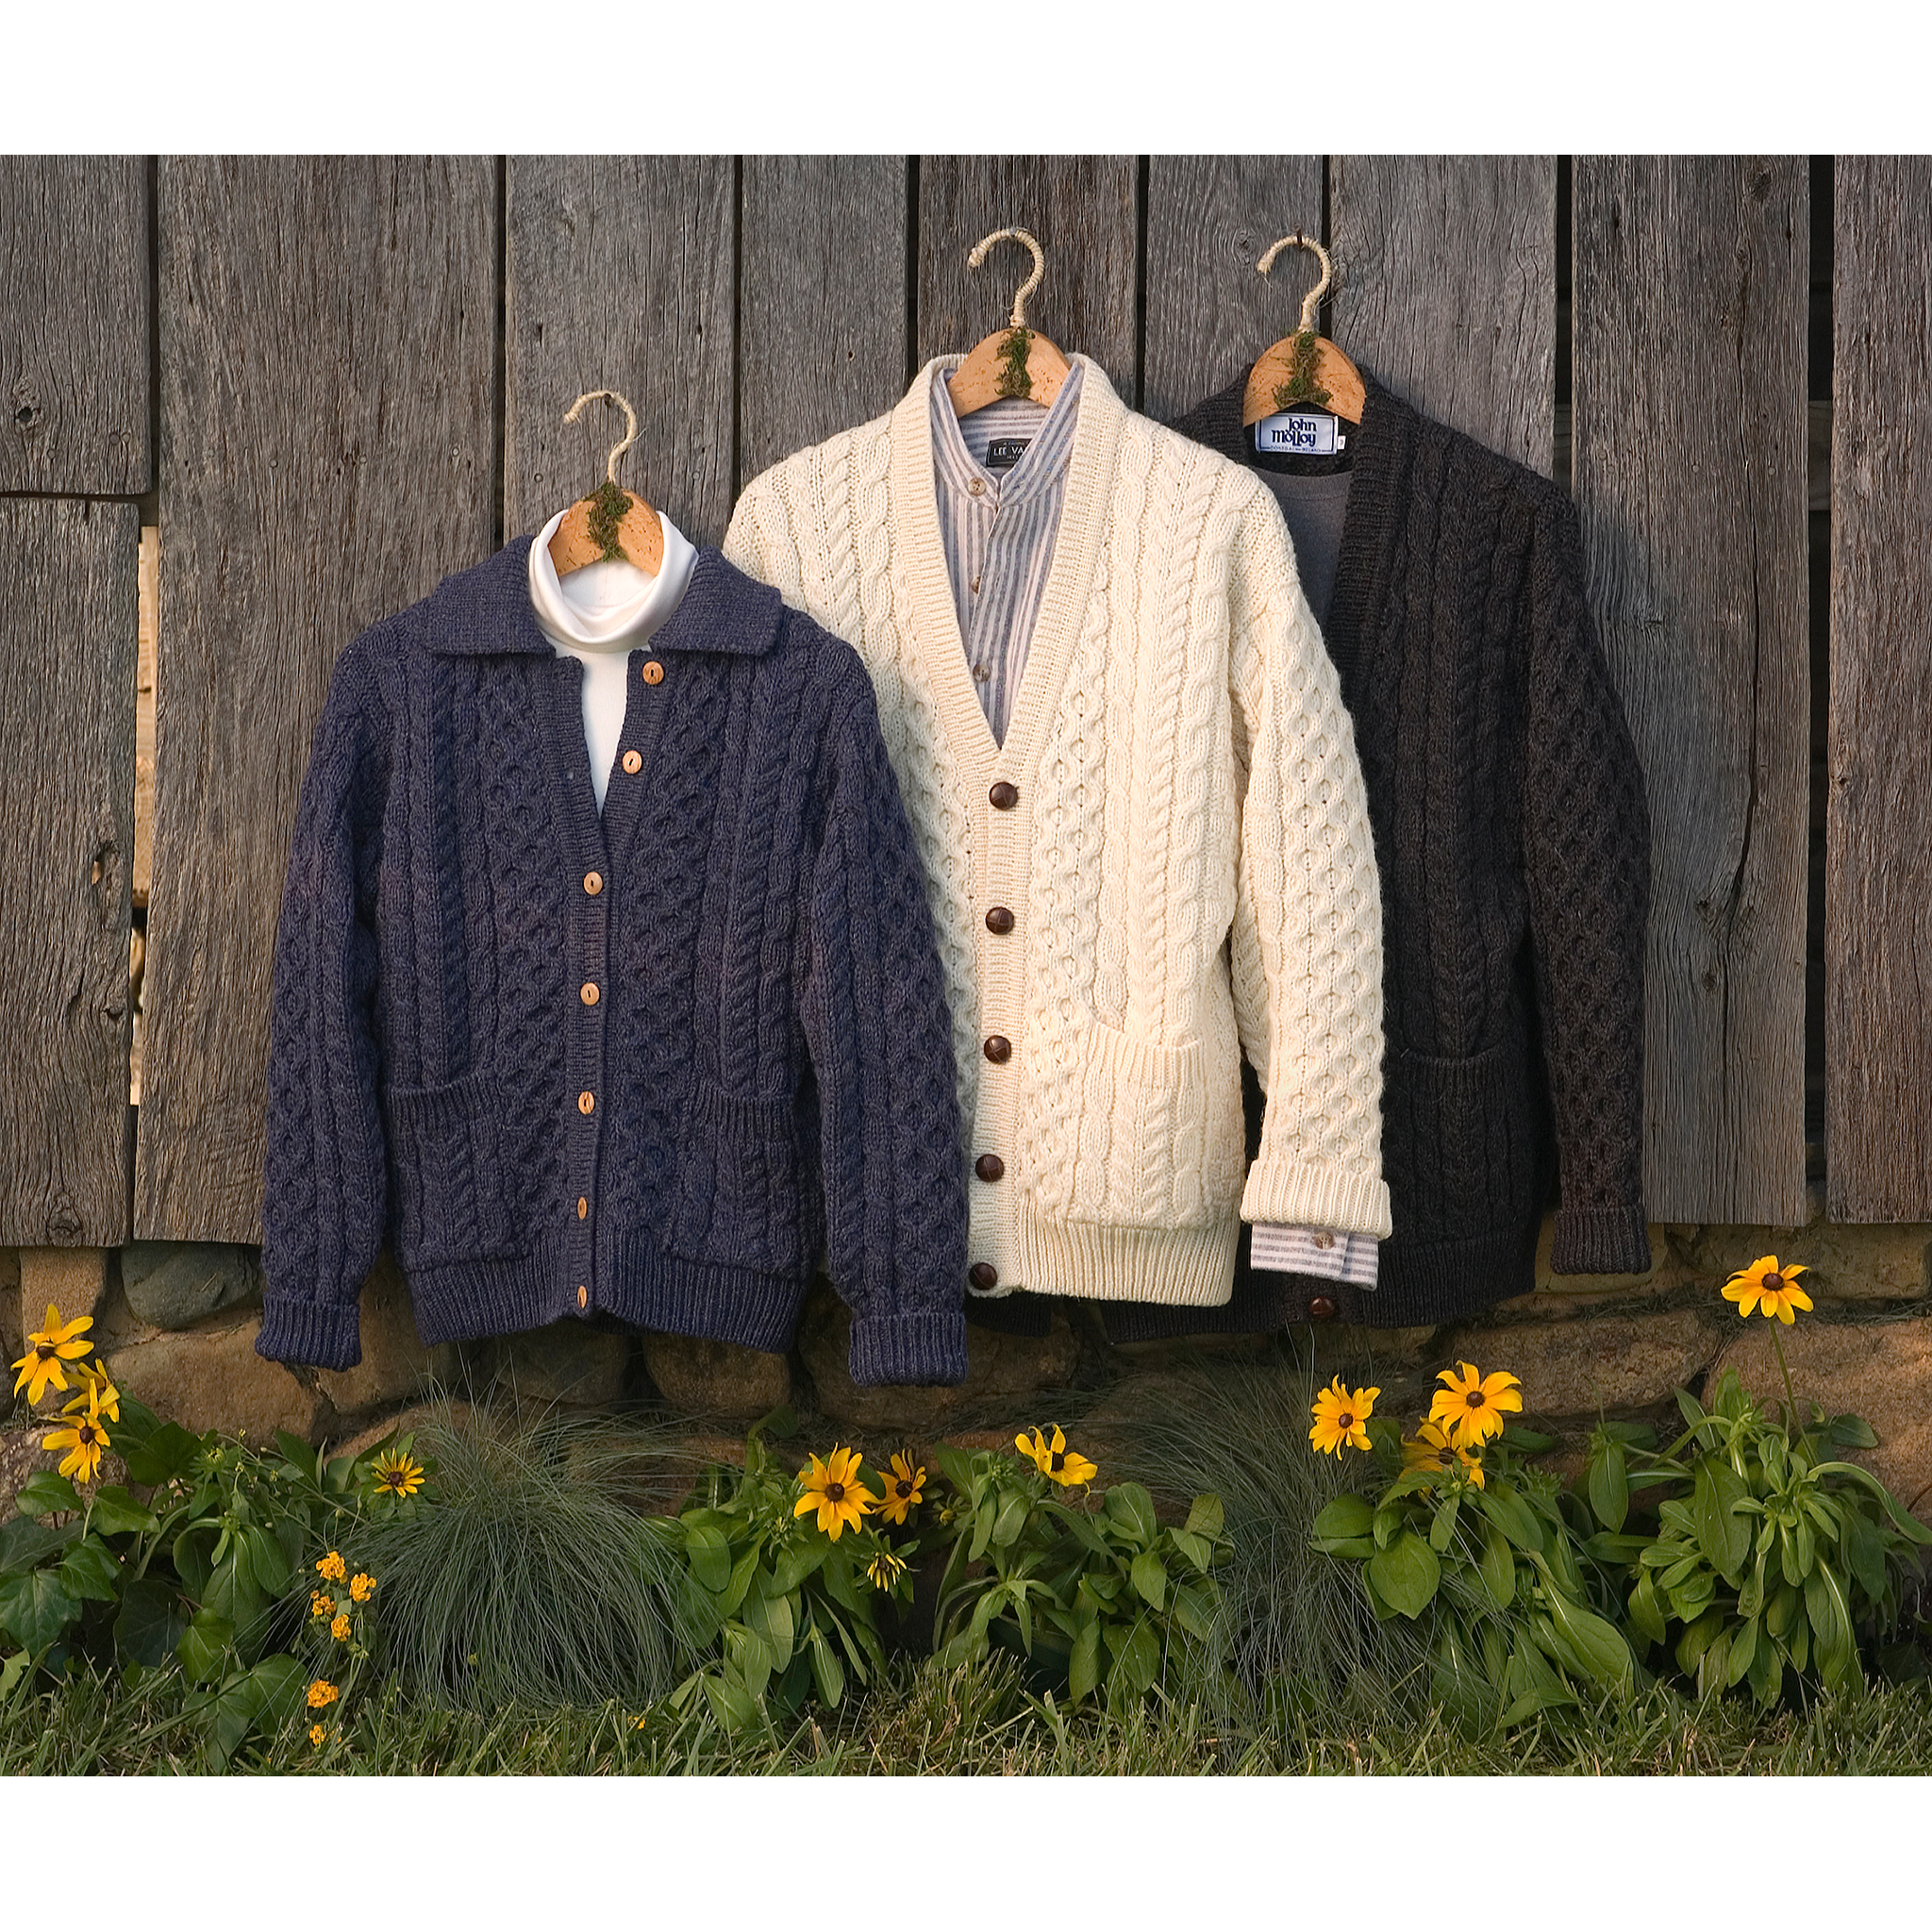 3 sweaters on a barn with flowers for website product sales